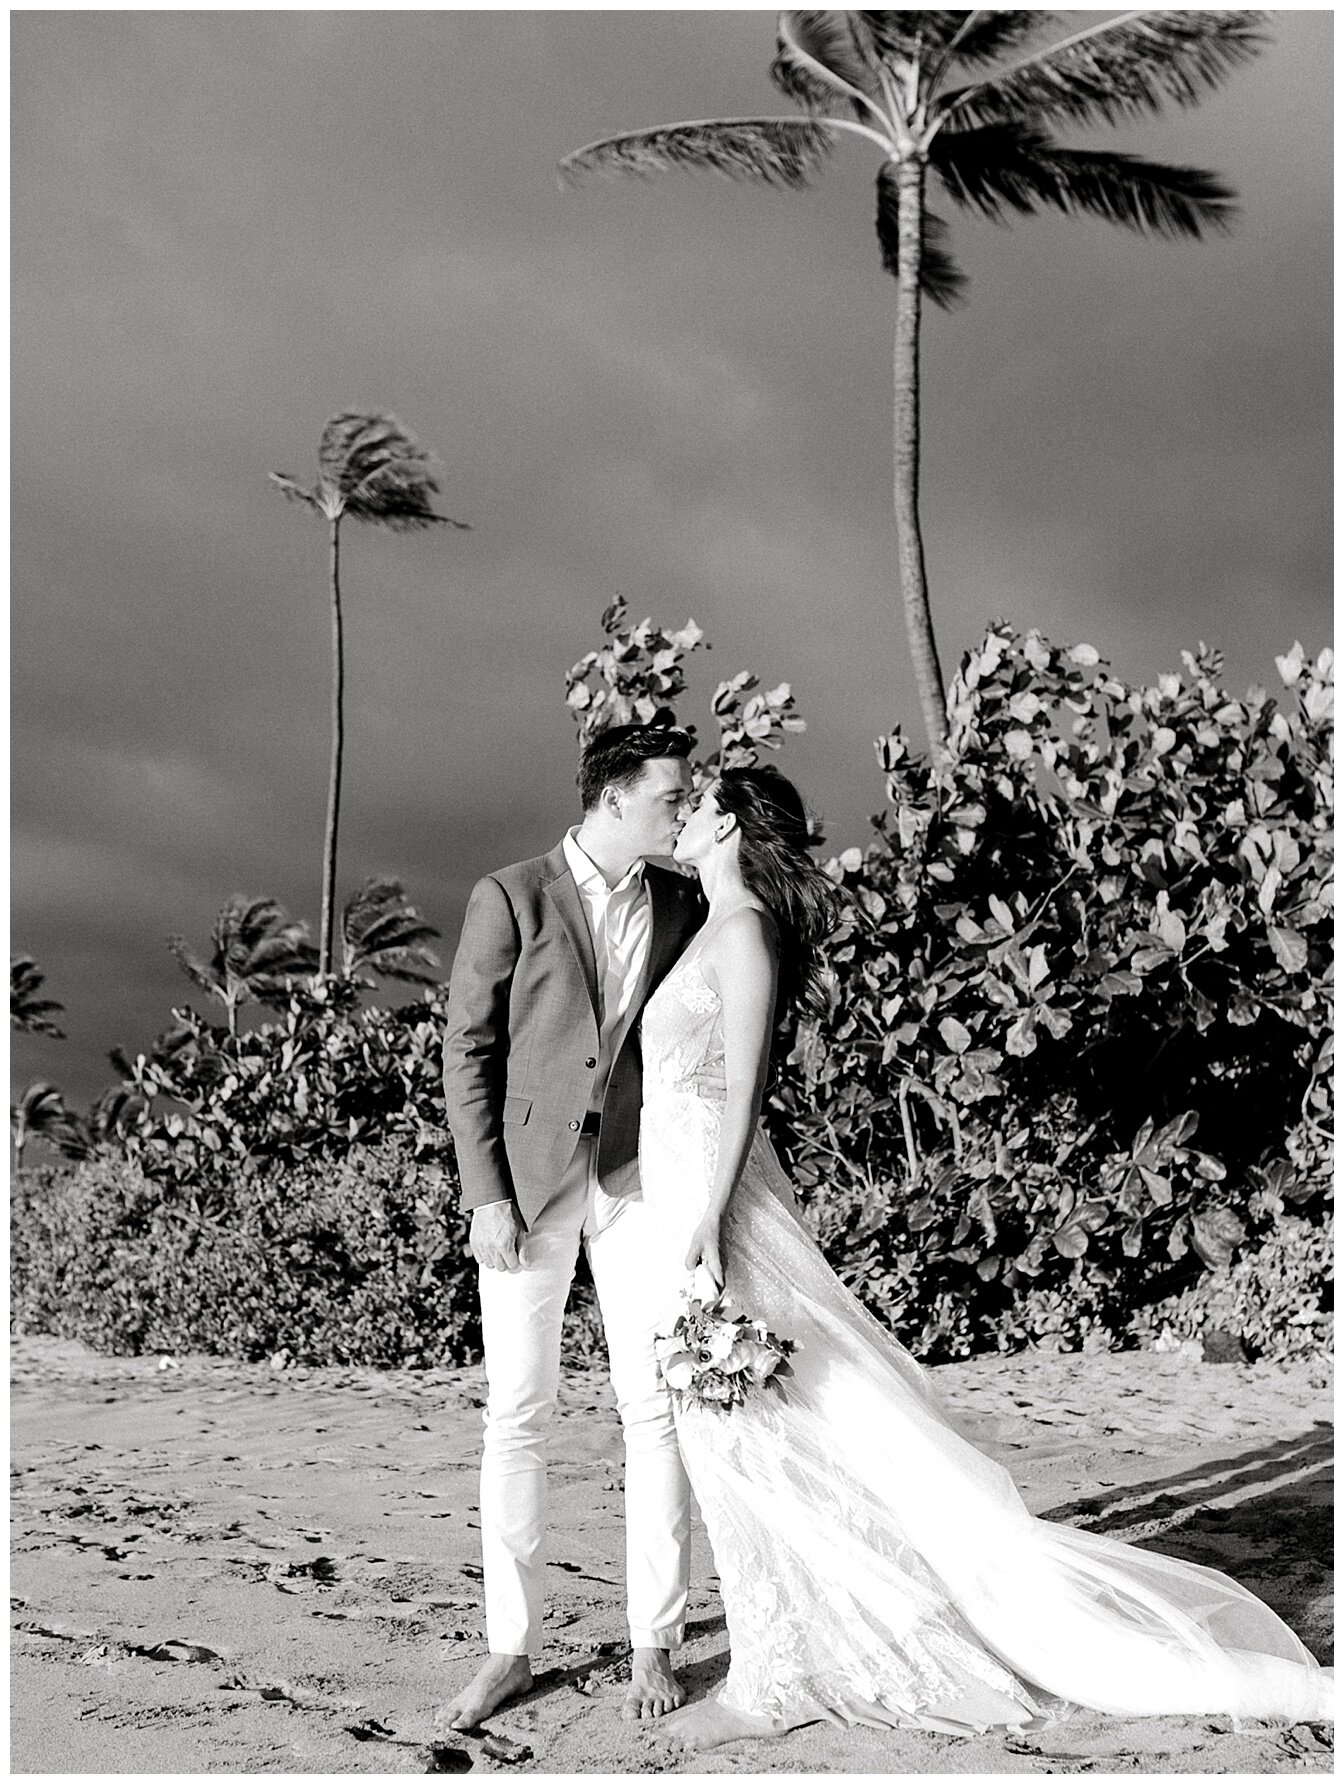 A breezy day on Maui's South Shore during a summer elopement.